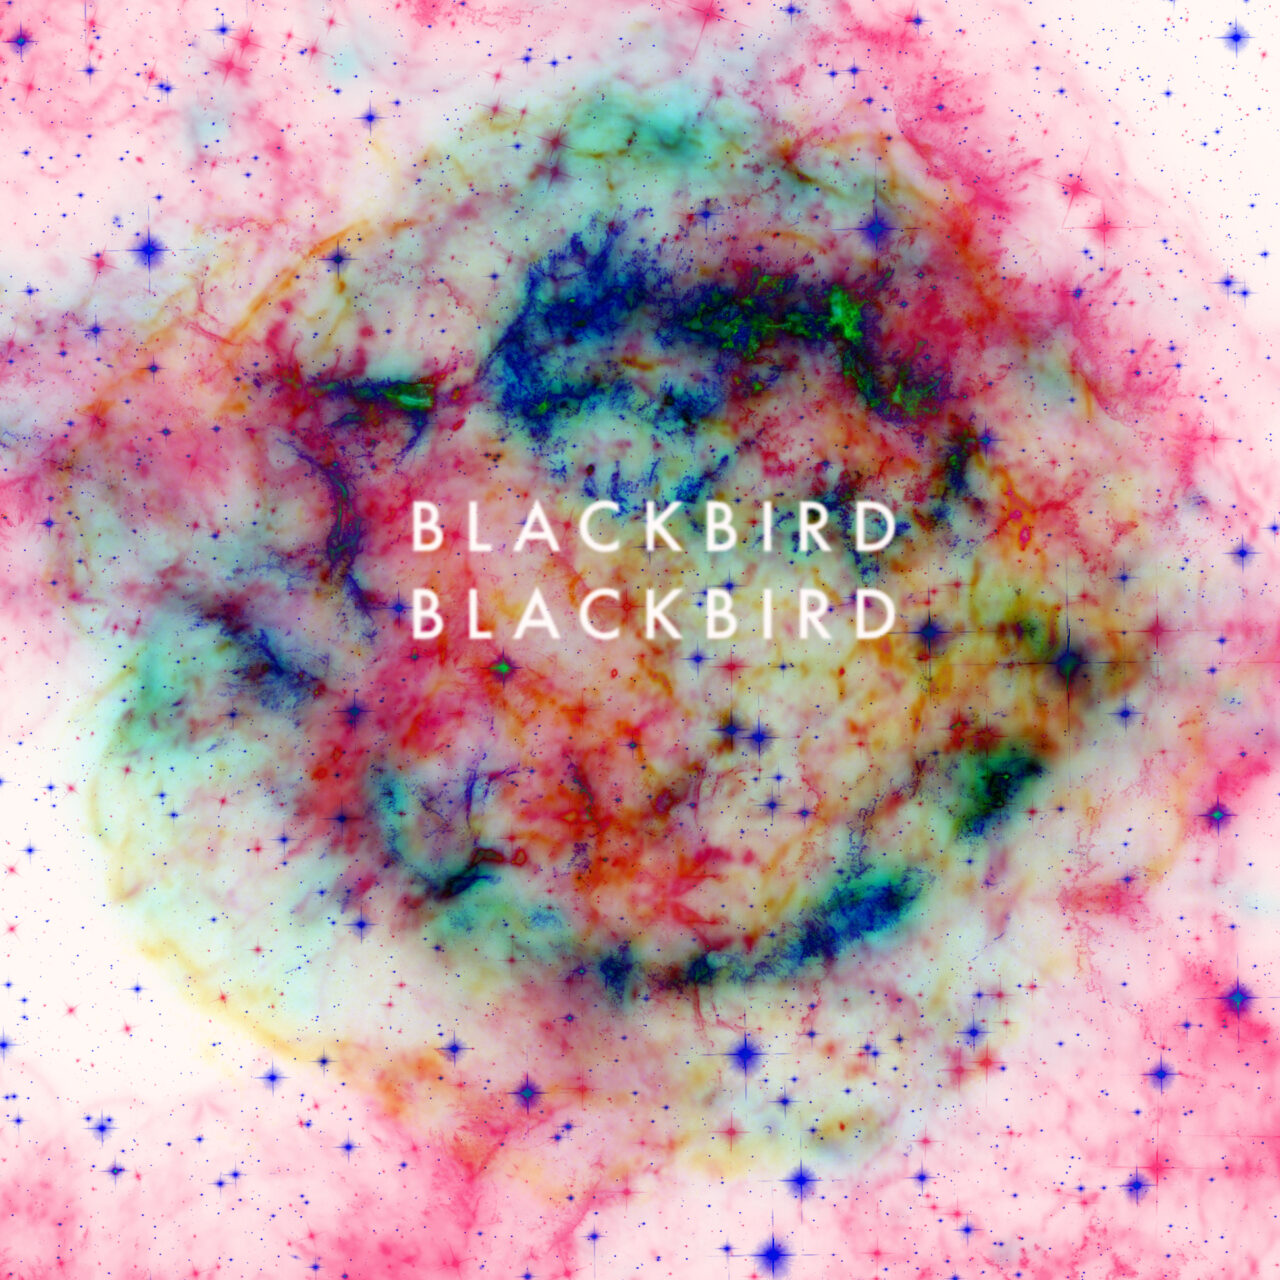 Blackbird Blackbird, este sábado en Madrid